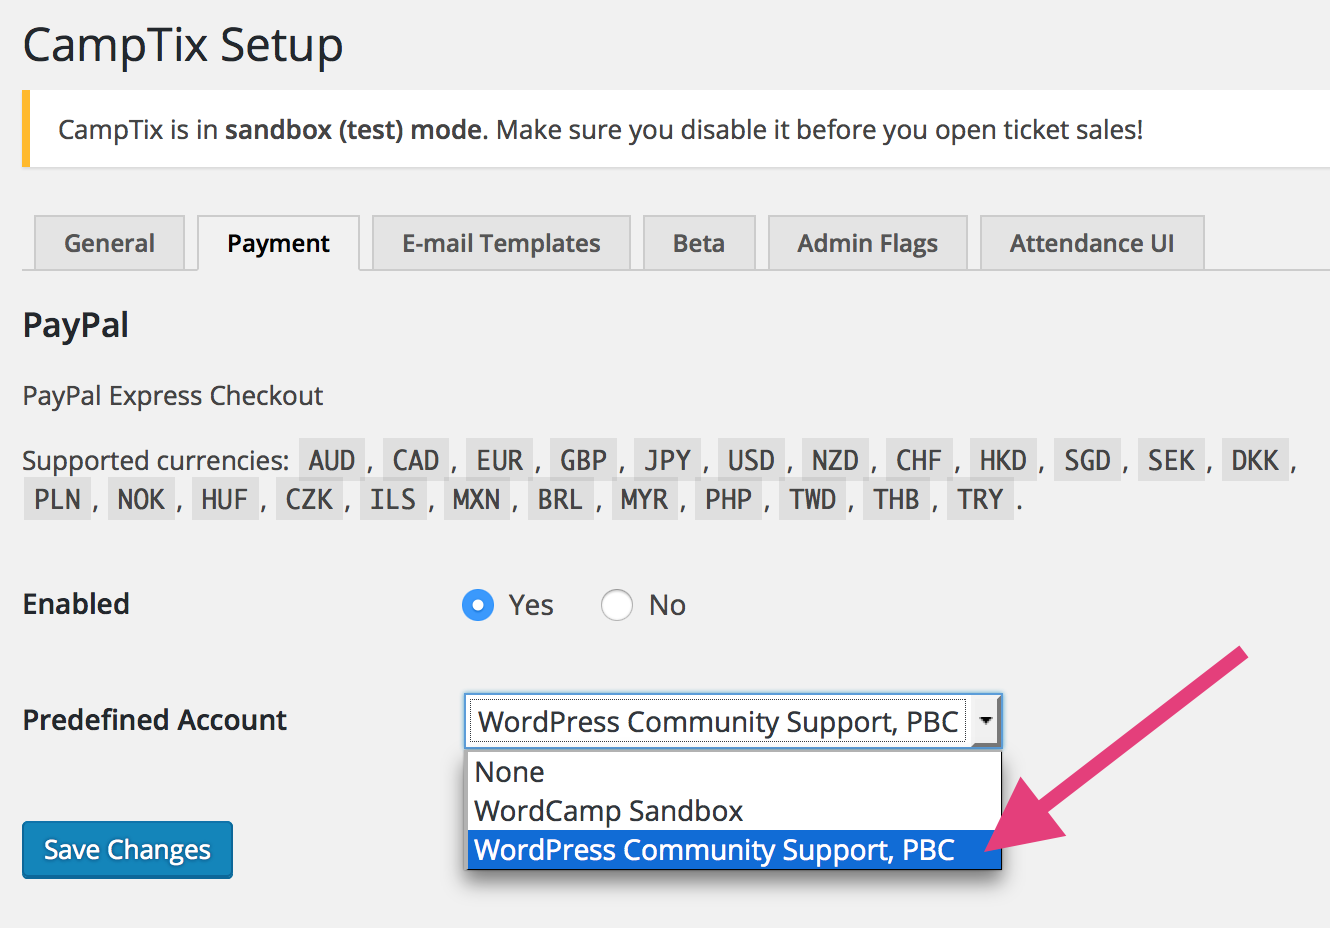 Running the money through WordPress Community Support, PBC